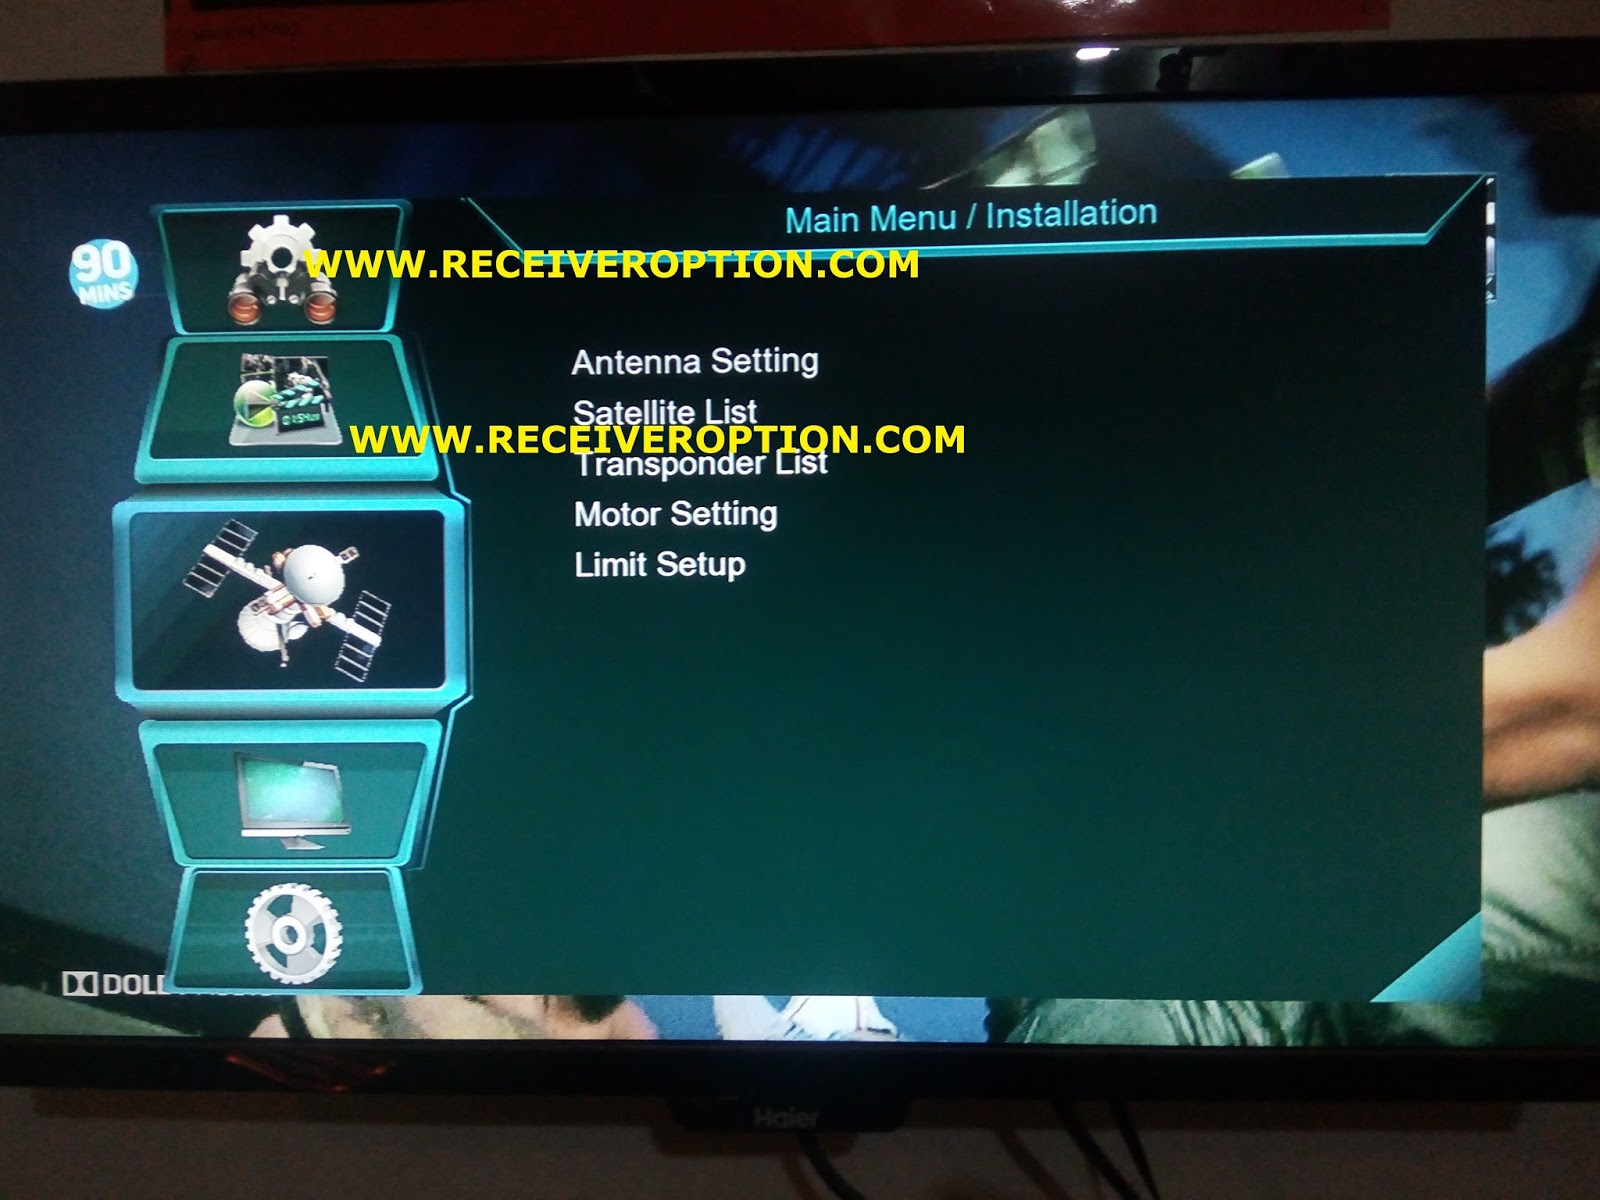 OPENBOX GENIUS PLUS HD RECEIVER AUTO ROLL NEW SOFTWARE - HOW TO